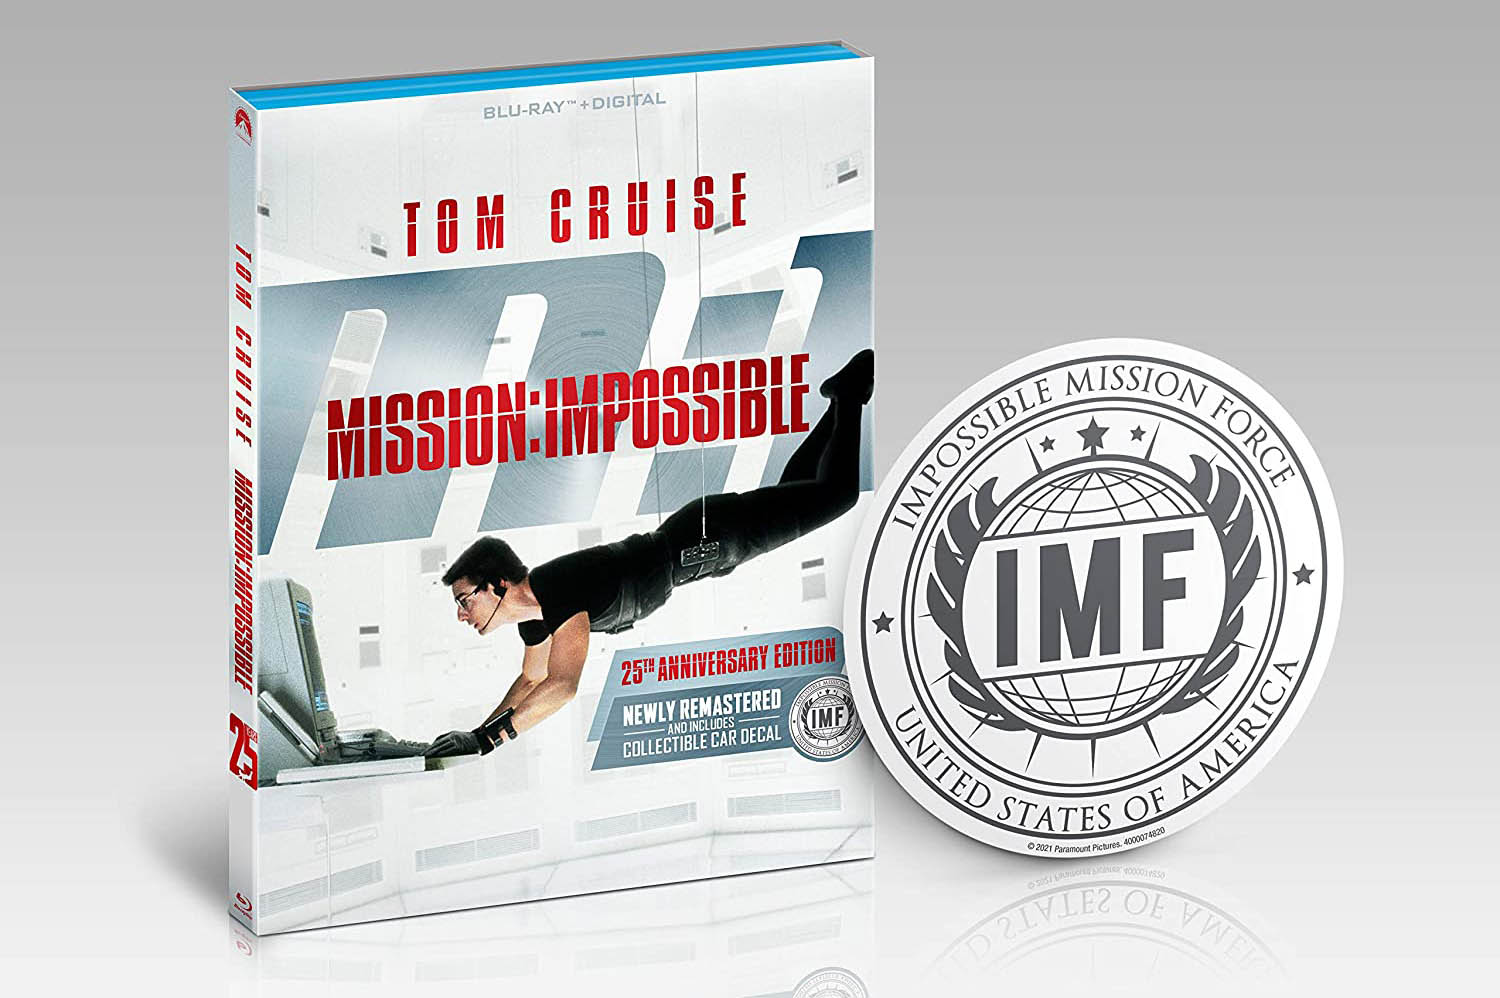 Mission Impossible 25th Anniversary Limited Edition IMF decal